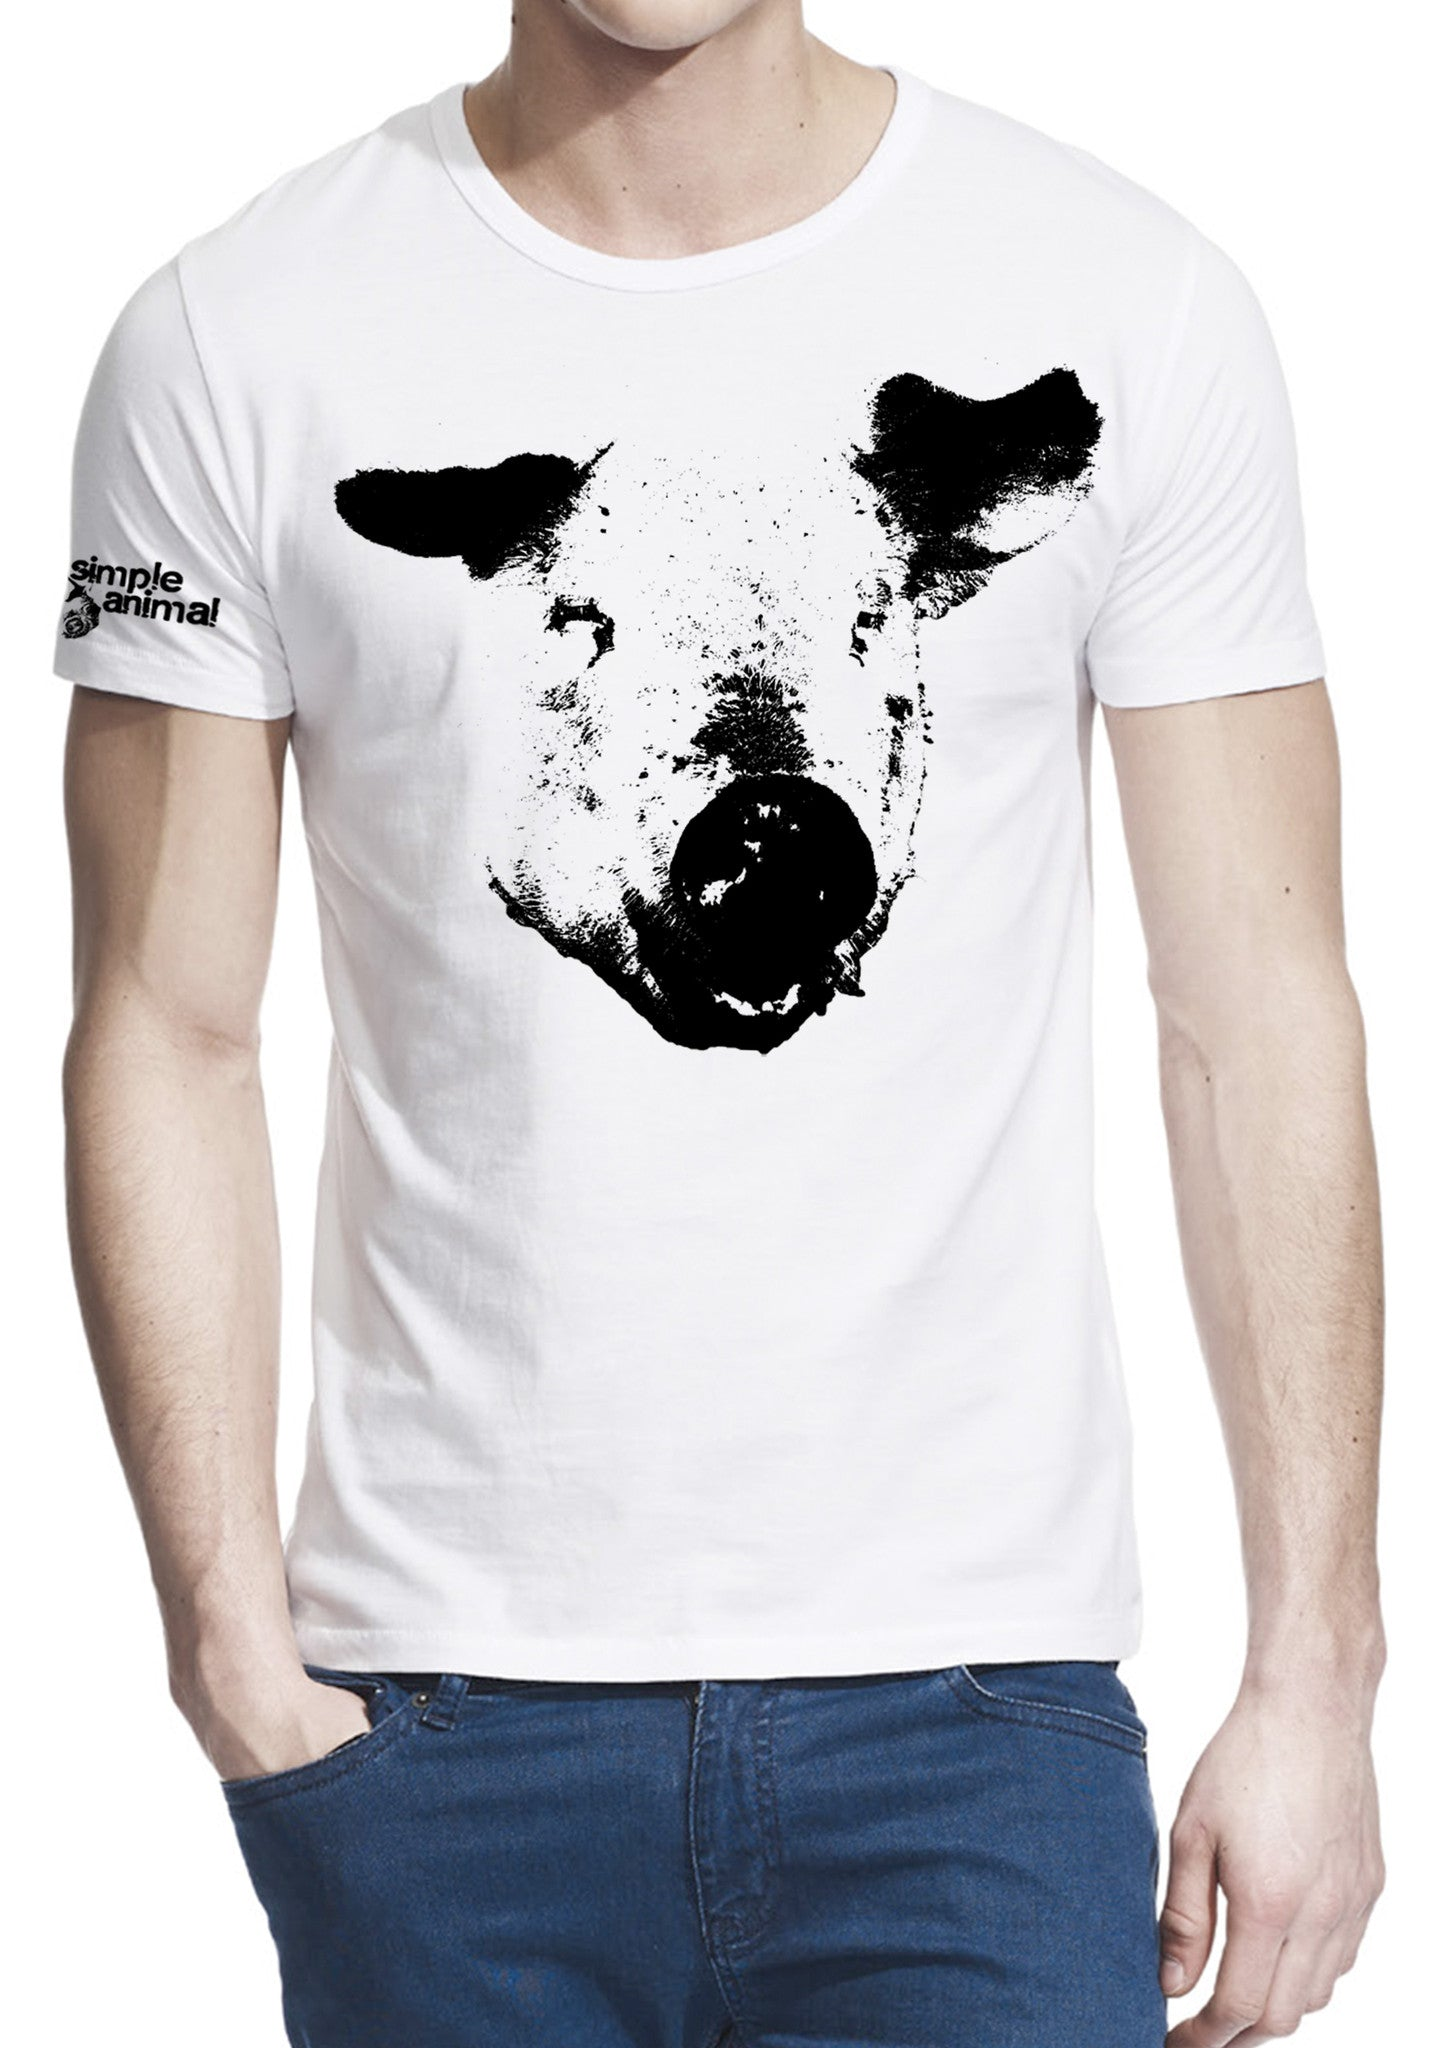 The Pig, 70% Bamboo-Viscose & 30% Organic Cotton, Guys - Simple Animal